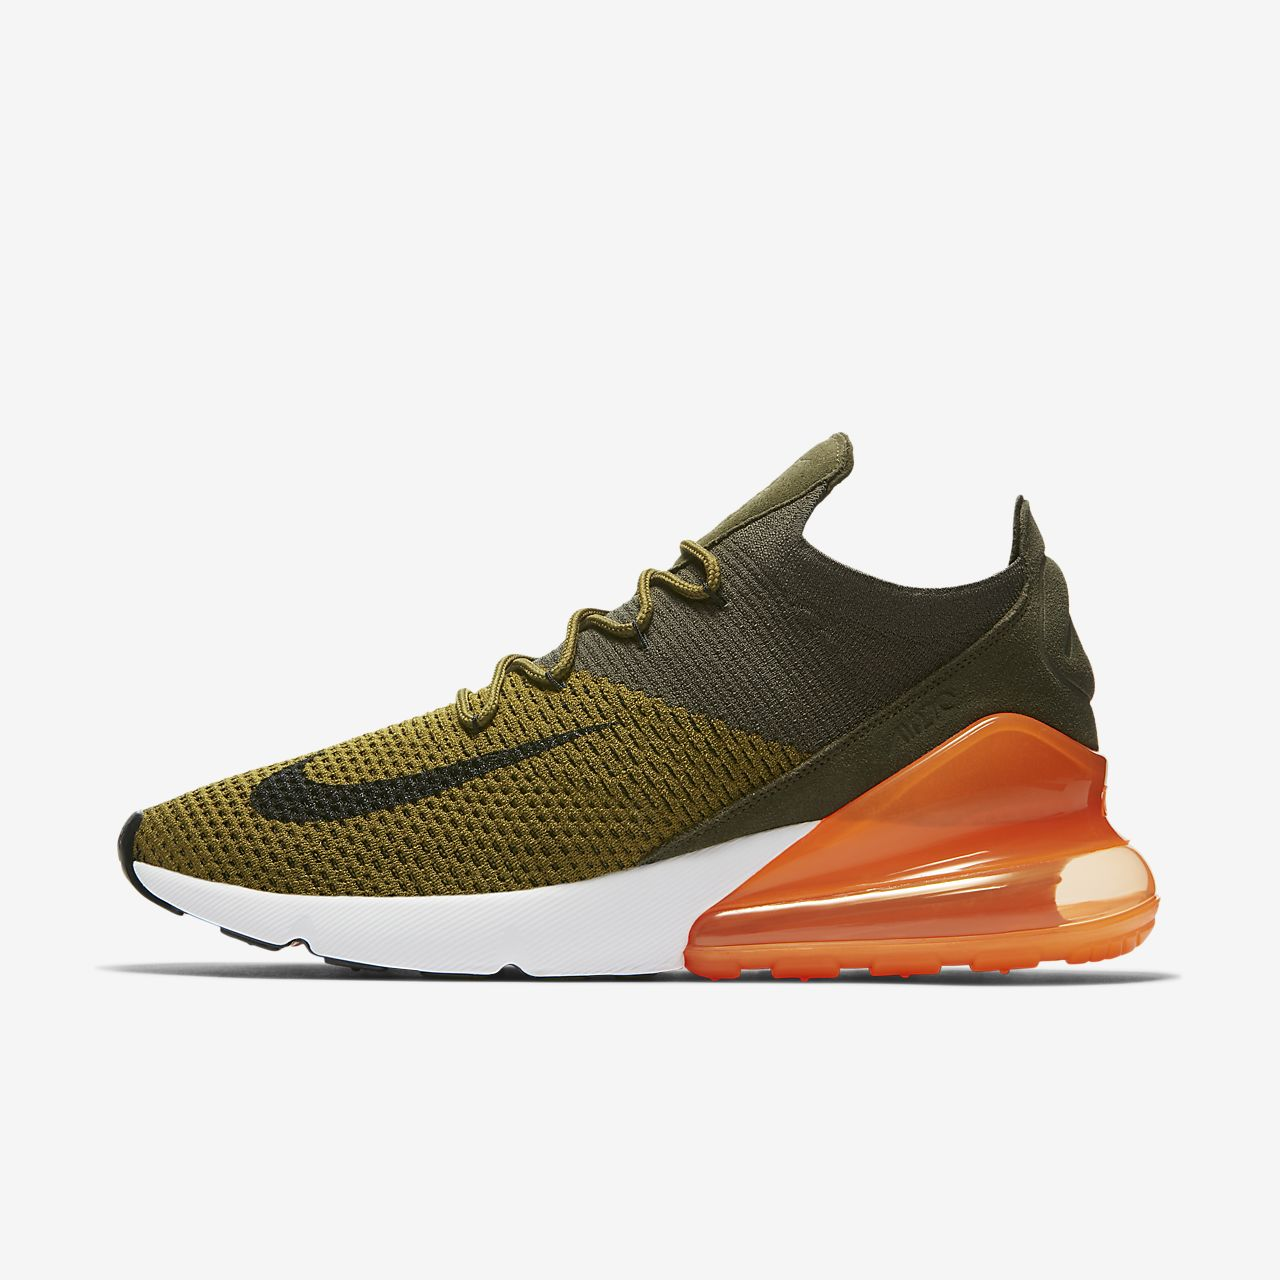 Flyknit Air Max Shoe Men's 270 Nike qS78Aw